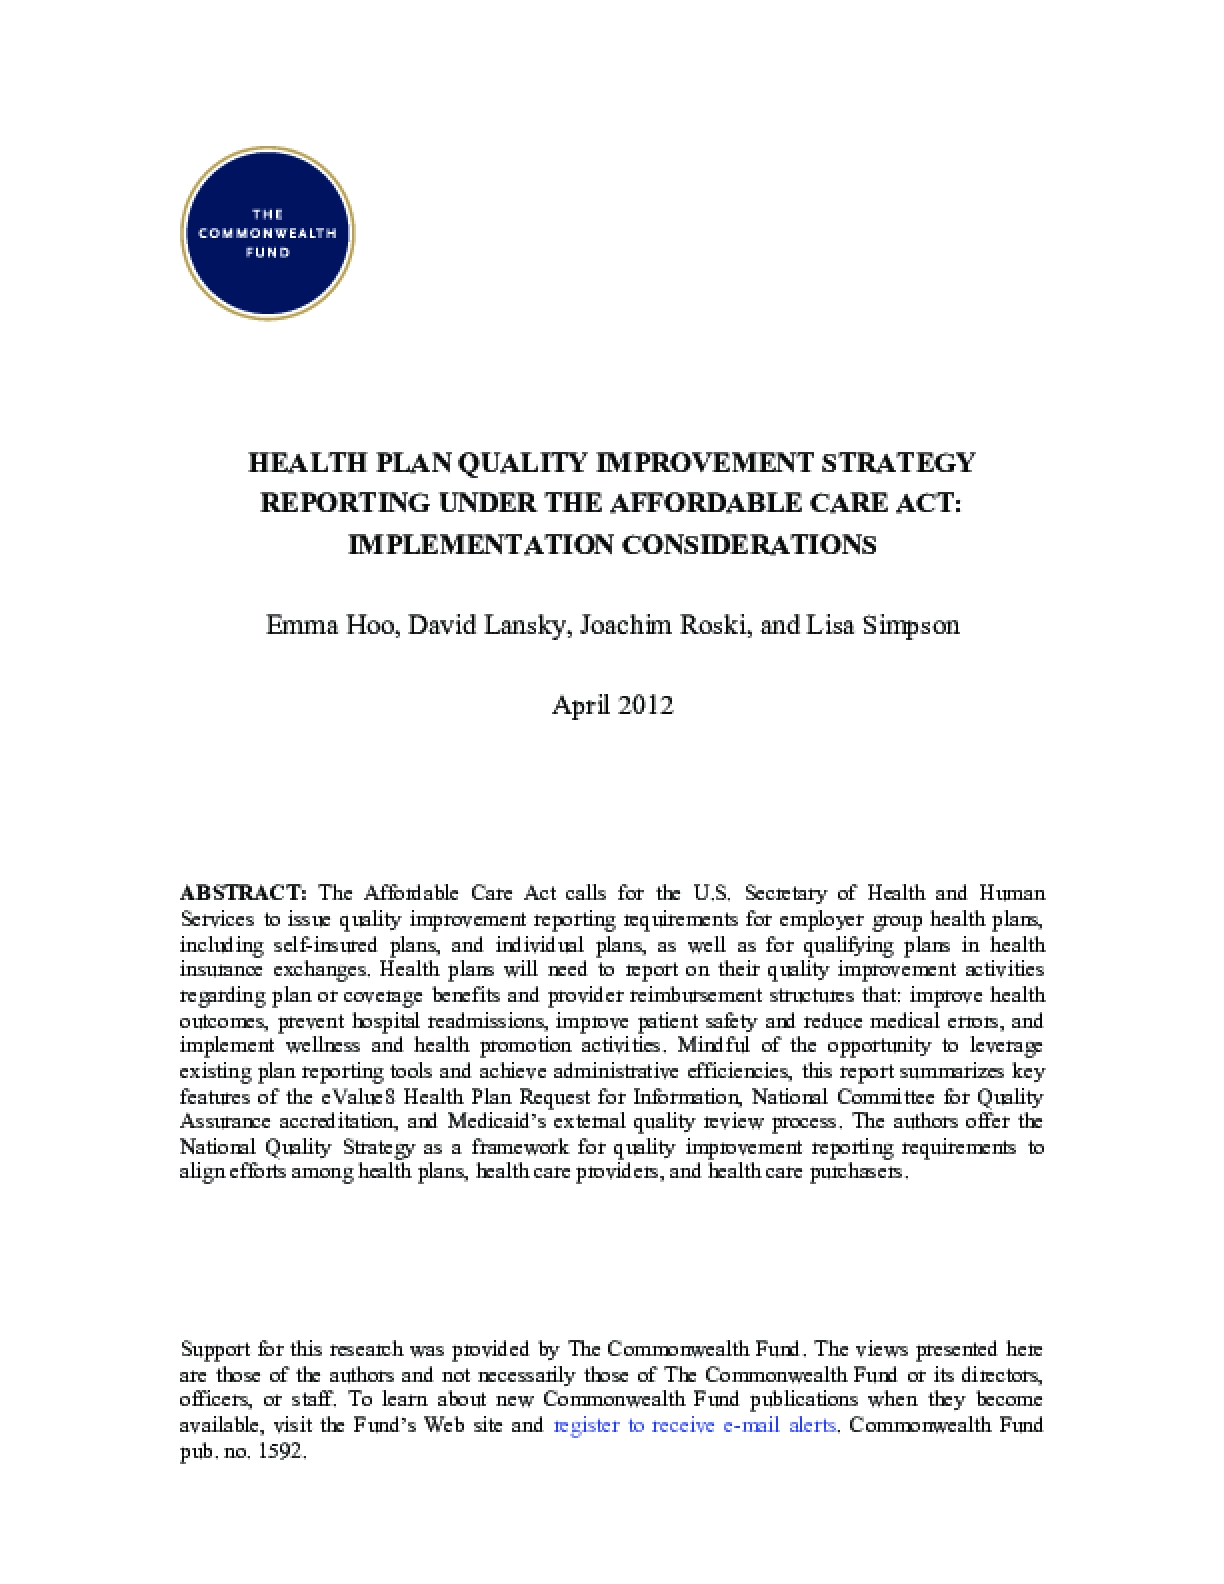 Health Plan Quality Improvement Strategy Reporting Under the Affordable Care Act: Implementation Considerations